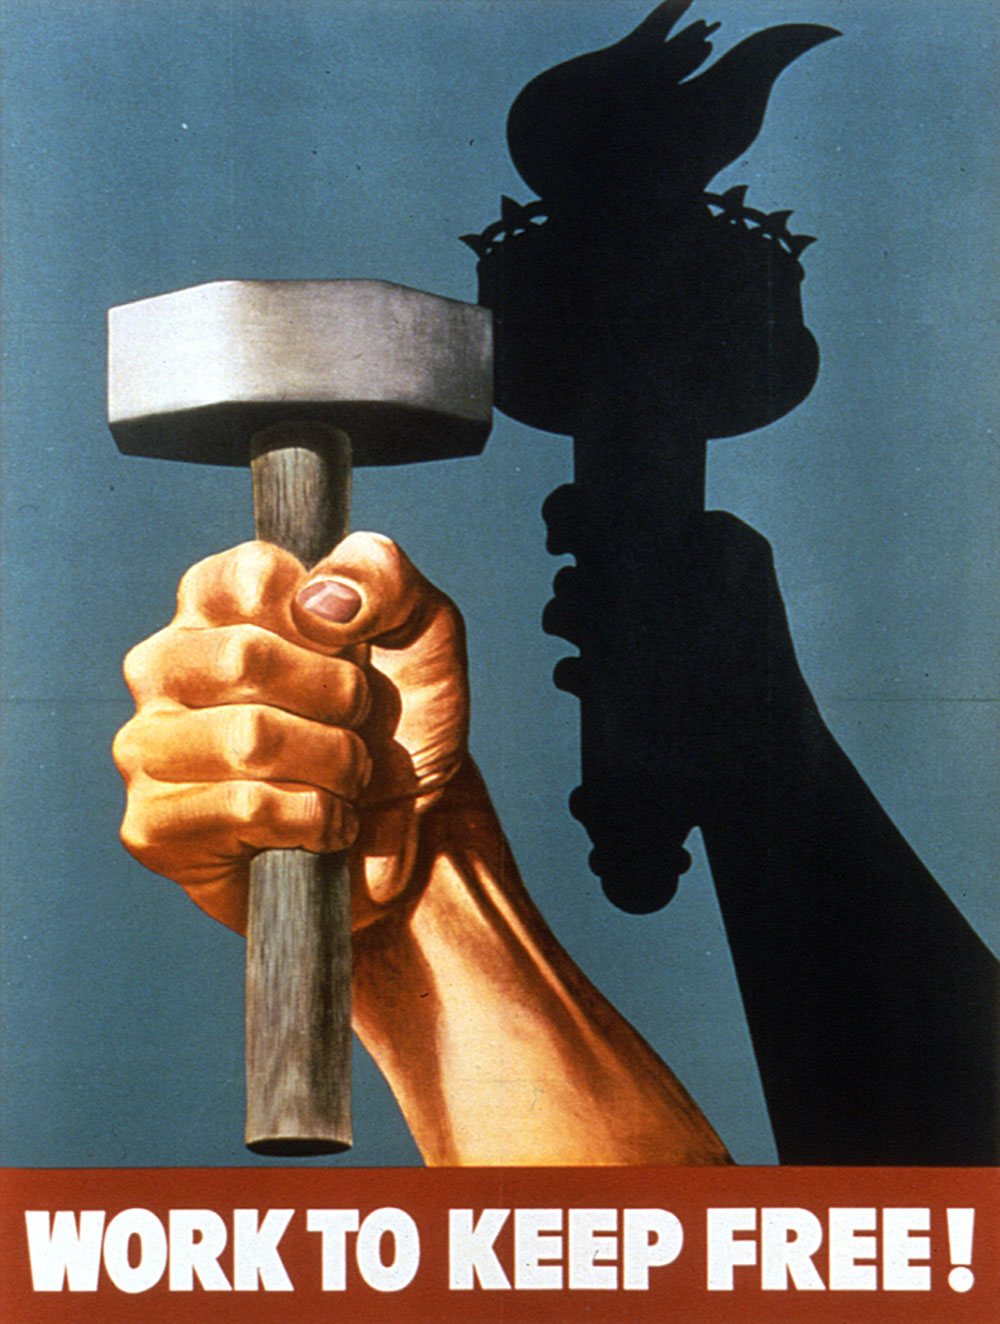 Poster depicting a raised hand clenching a hammer casting a shadow of the Statue of Liberty's hand grasping a torch